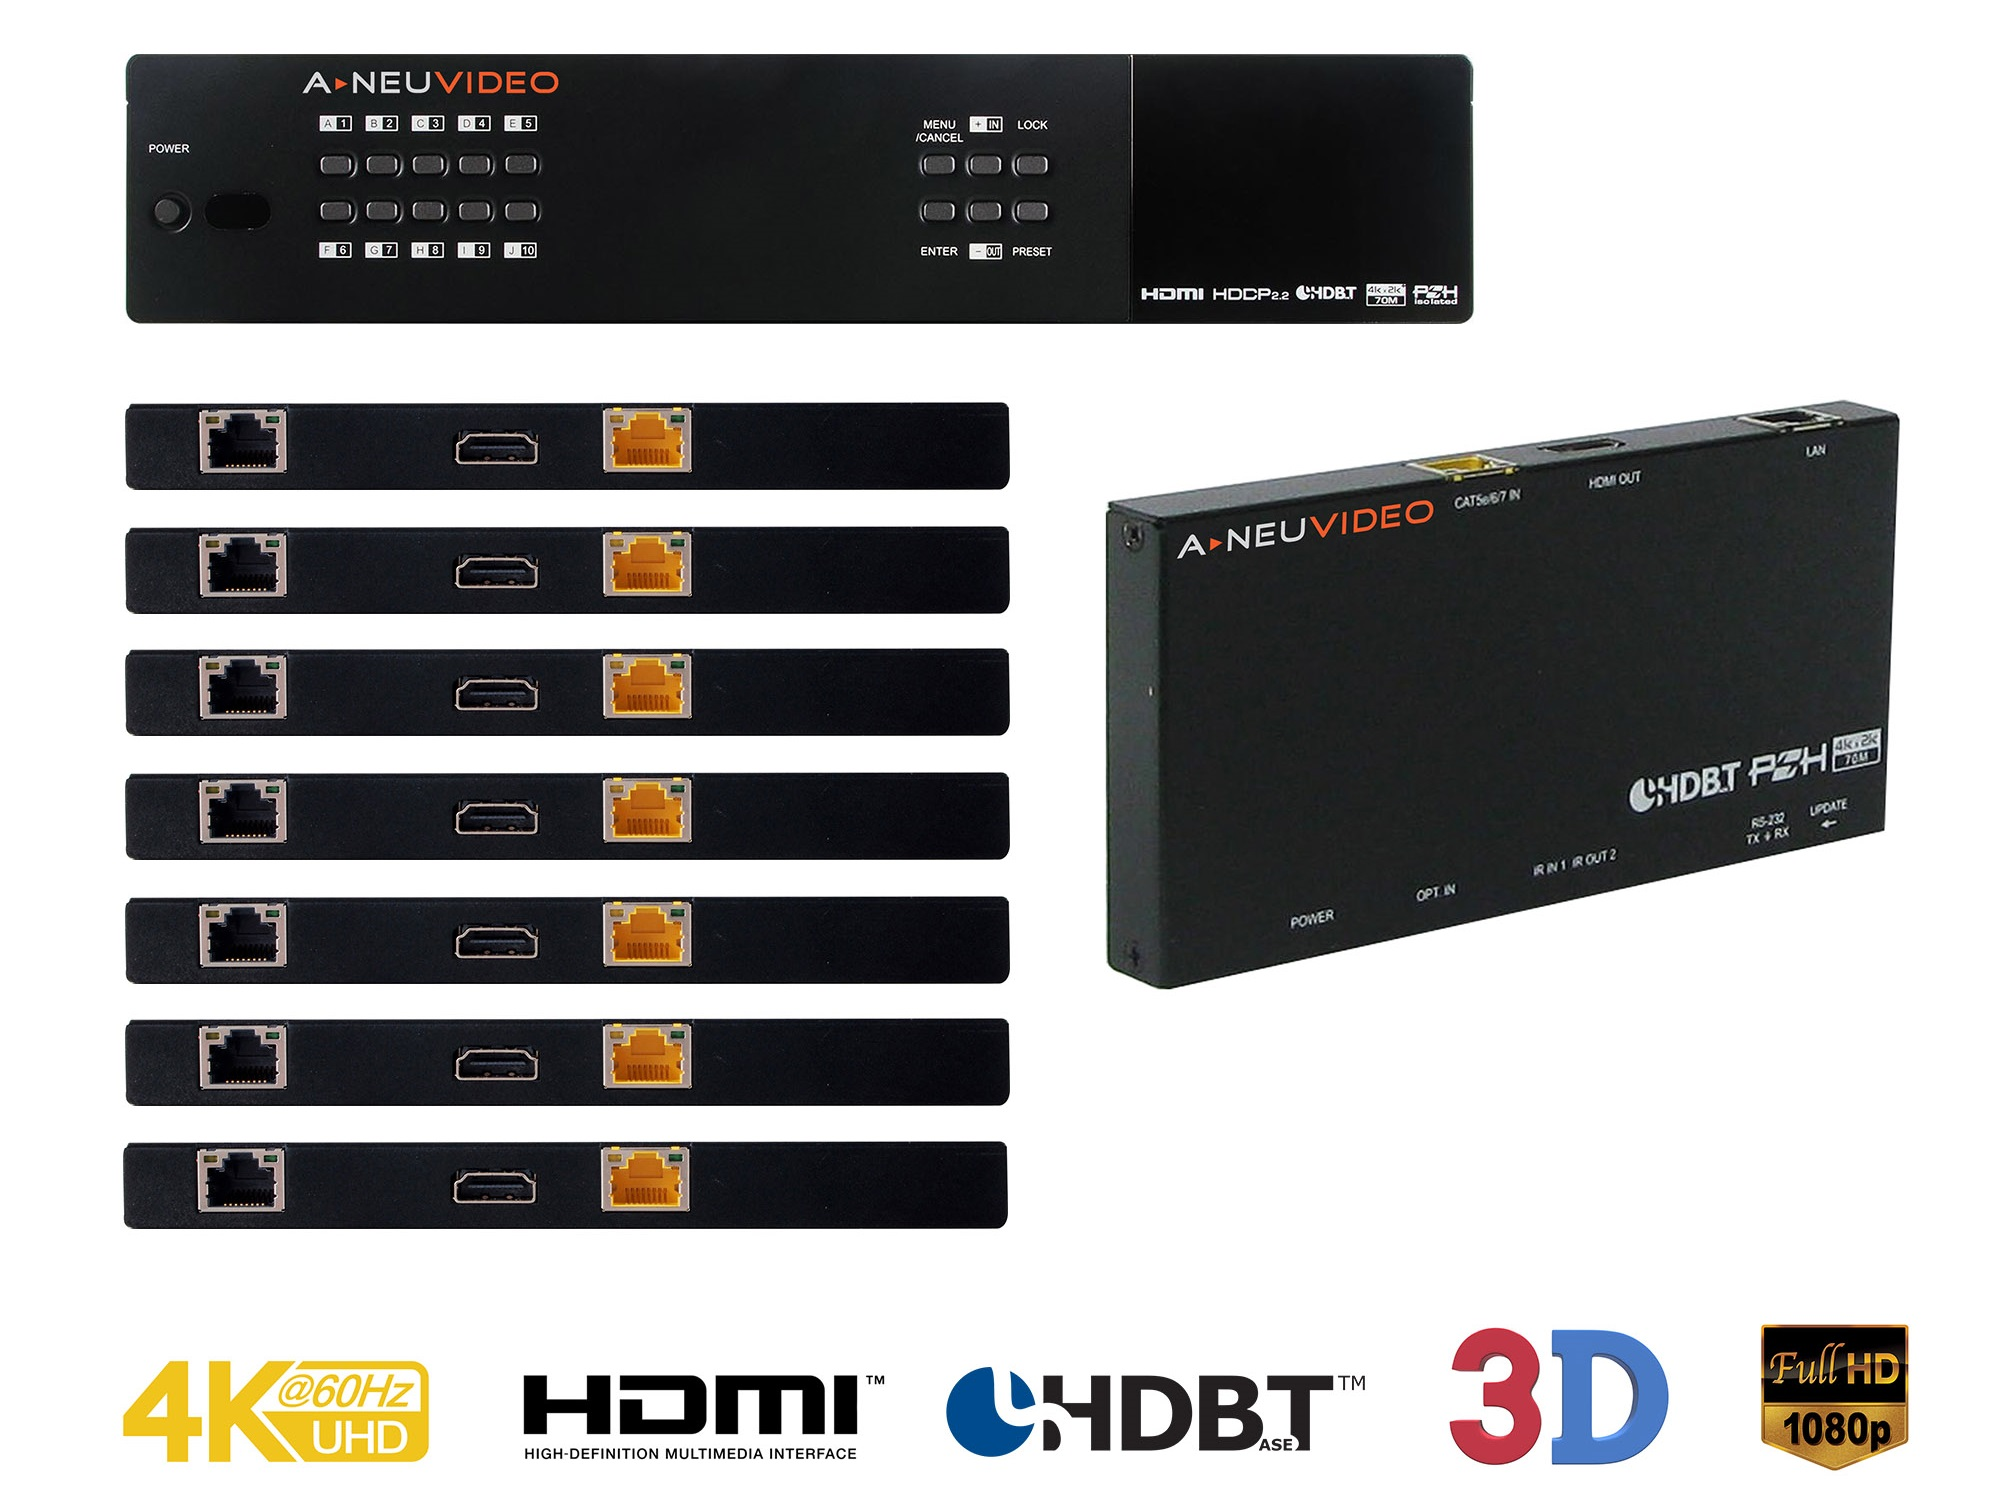 A-NeuVideo ANI-1082UHD-KIT 10x10 HDMI/HDBaseT 4K/60Hz and Audio Matrix Routing Switcher Kit